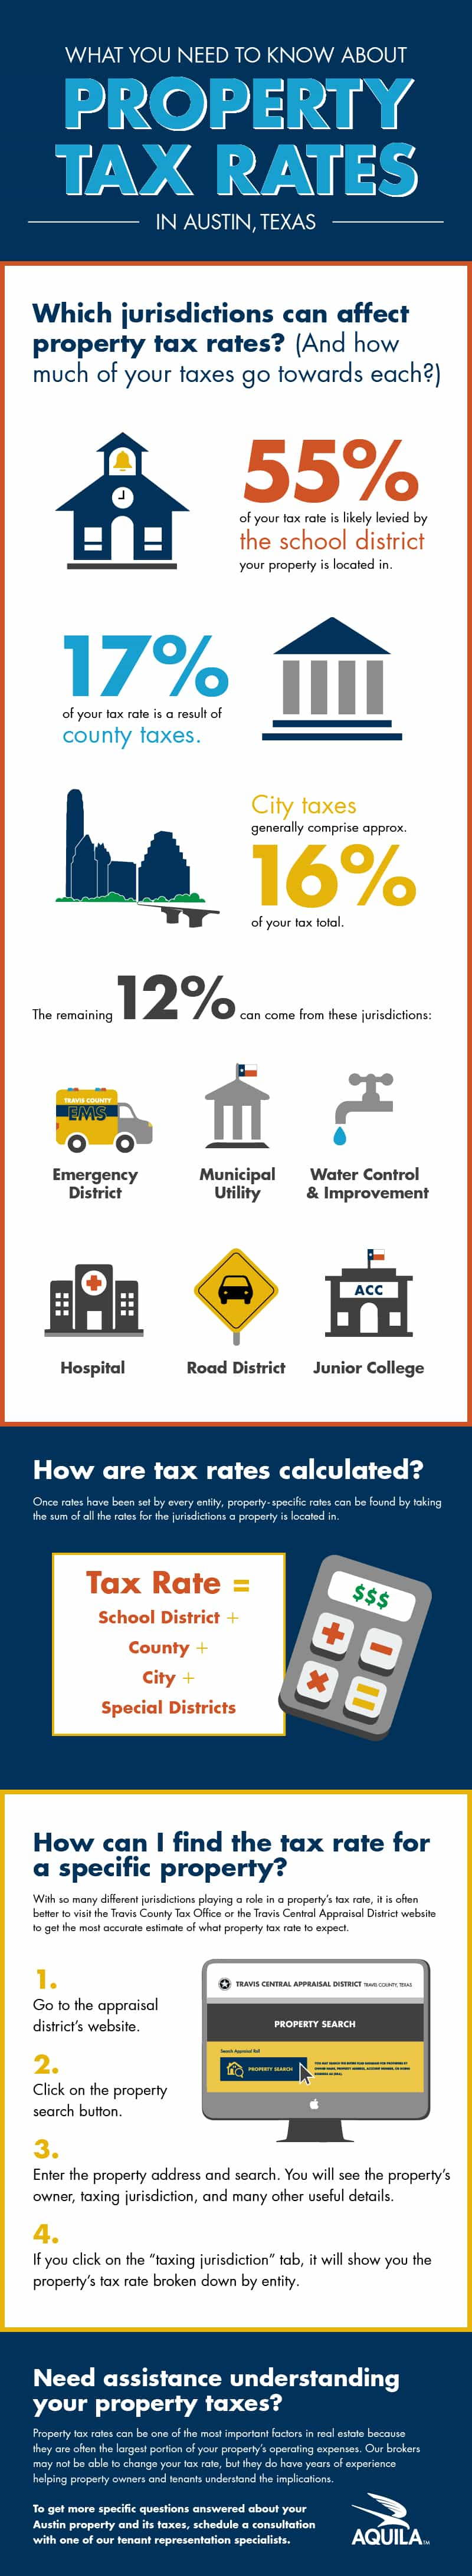 Infographic: What You Need to Know About Property Tax Rates in Austin, Texas